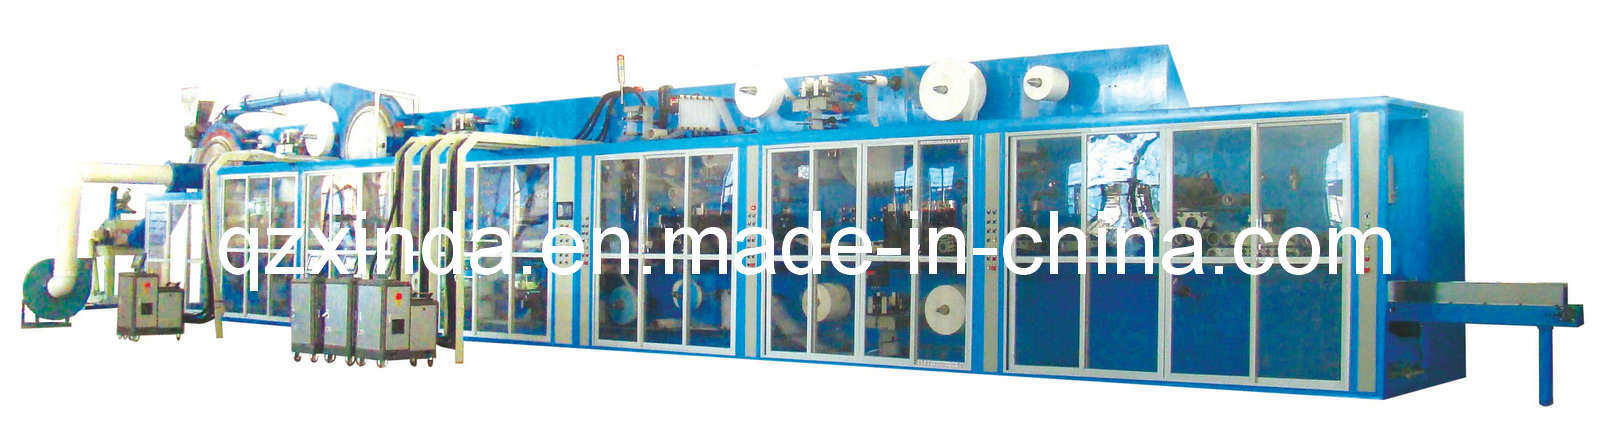 Semi-Servo Baby Diaper Machine (400 PCS/min) (CIL-BD-400C)